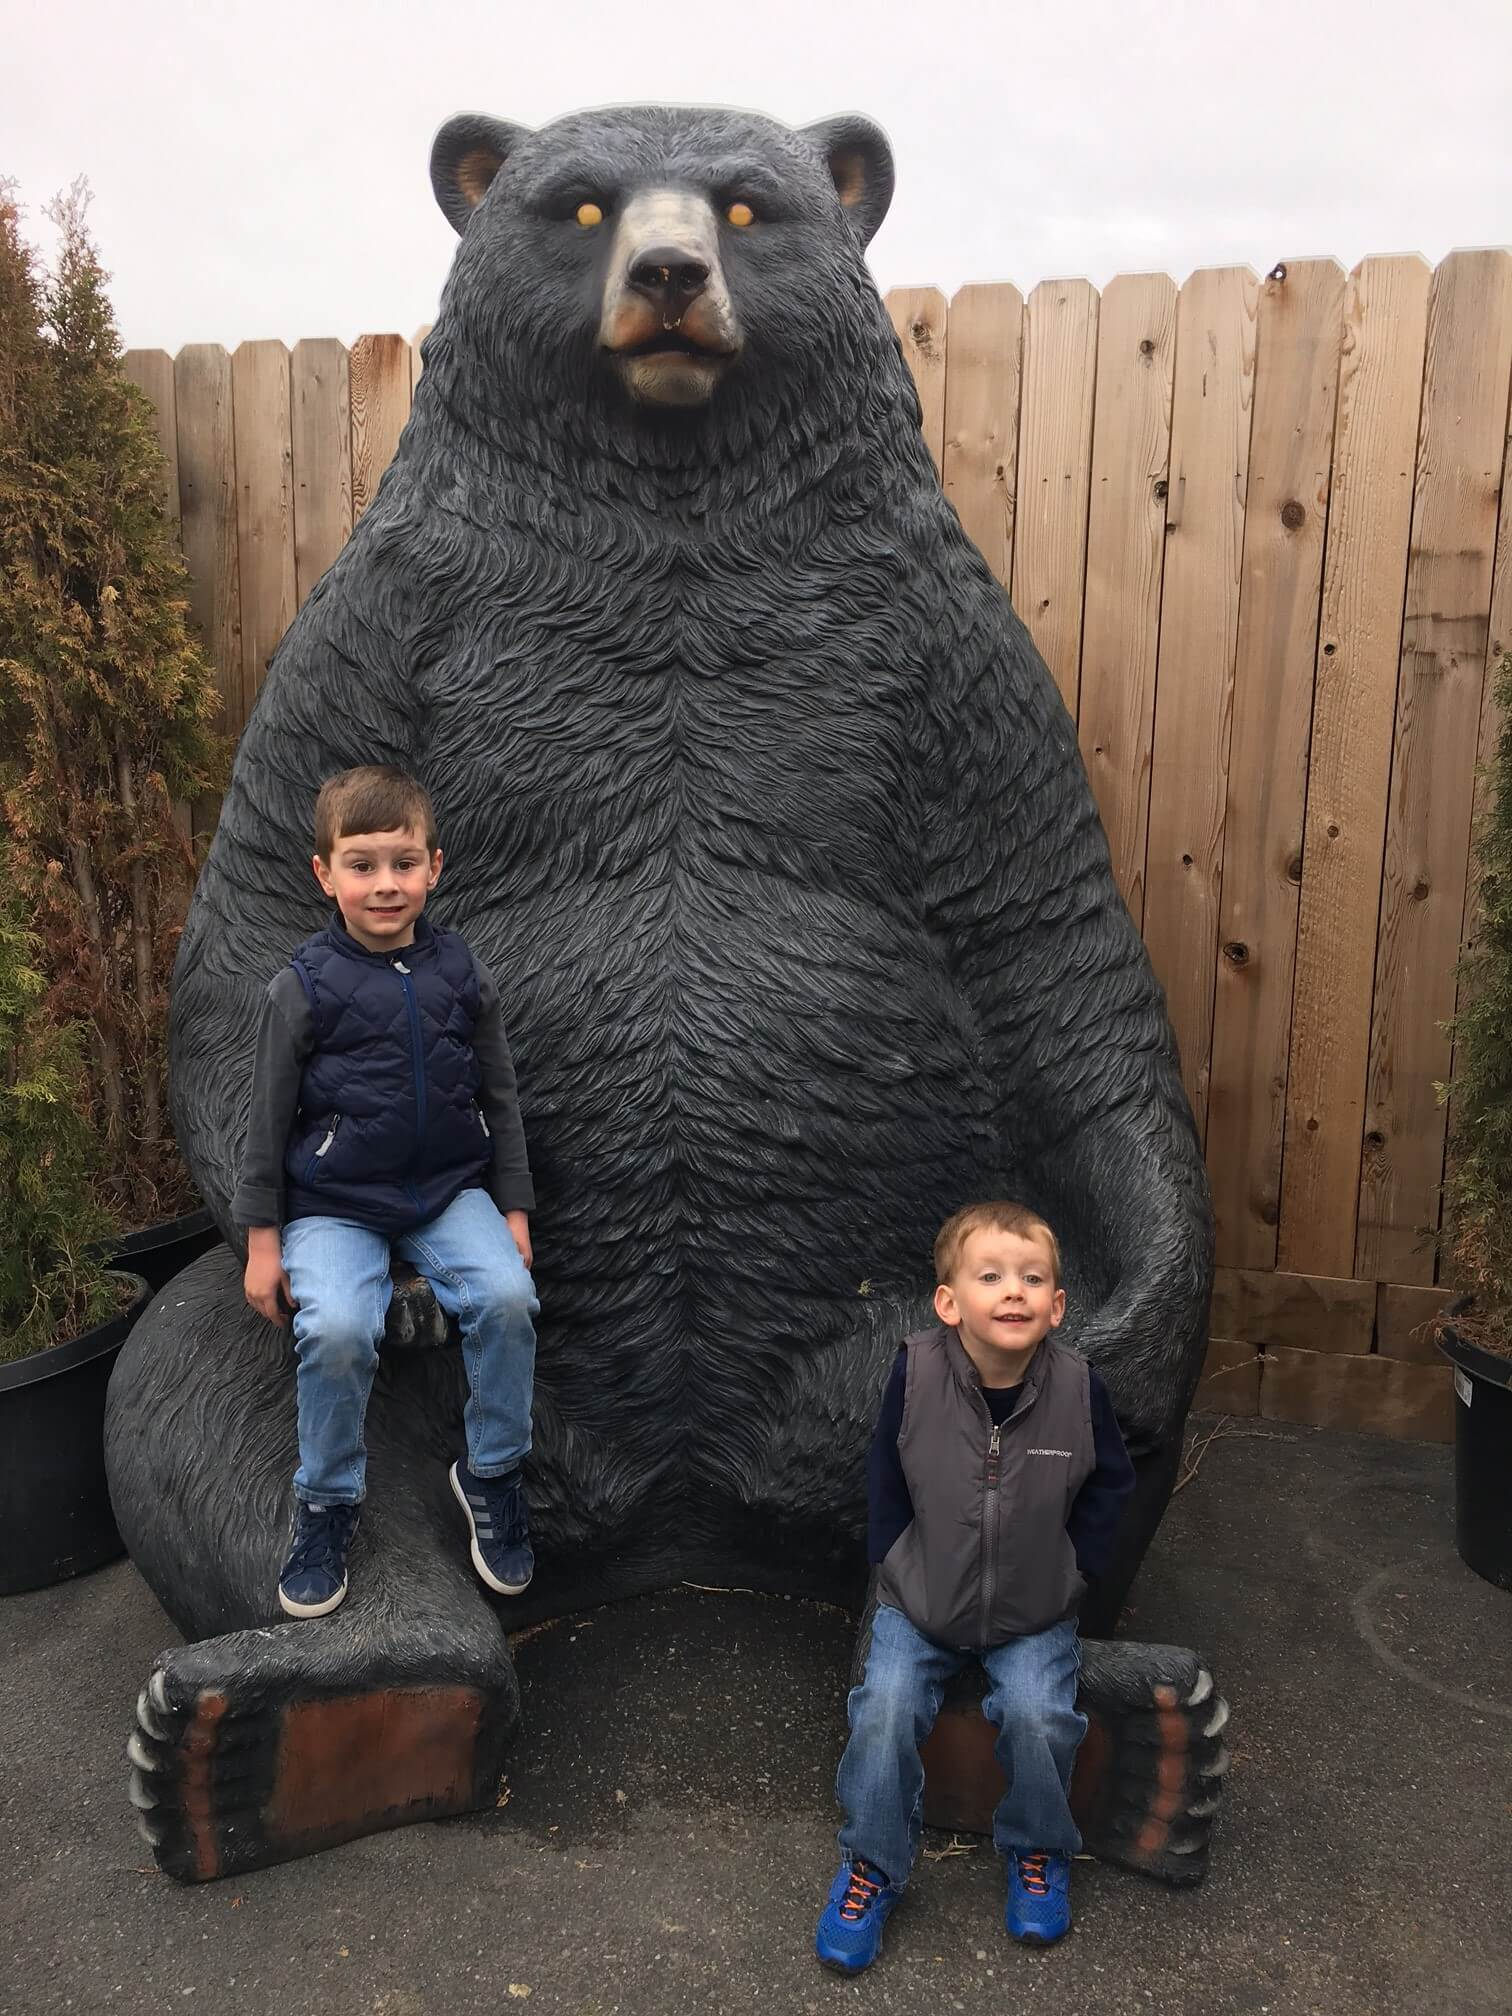 It's all smiles during adventures at Yellowstone Bear World.